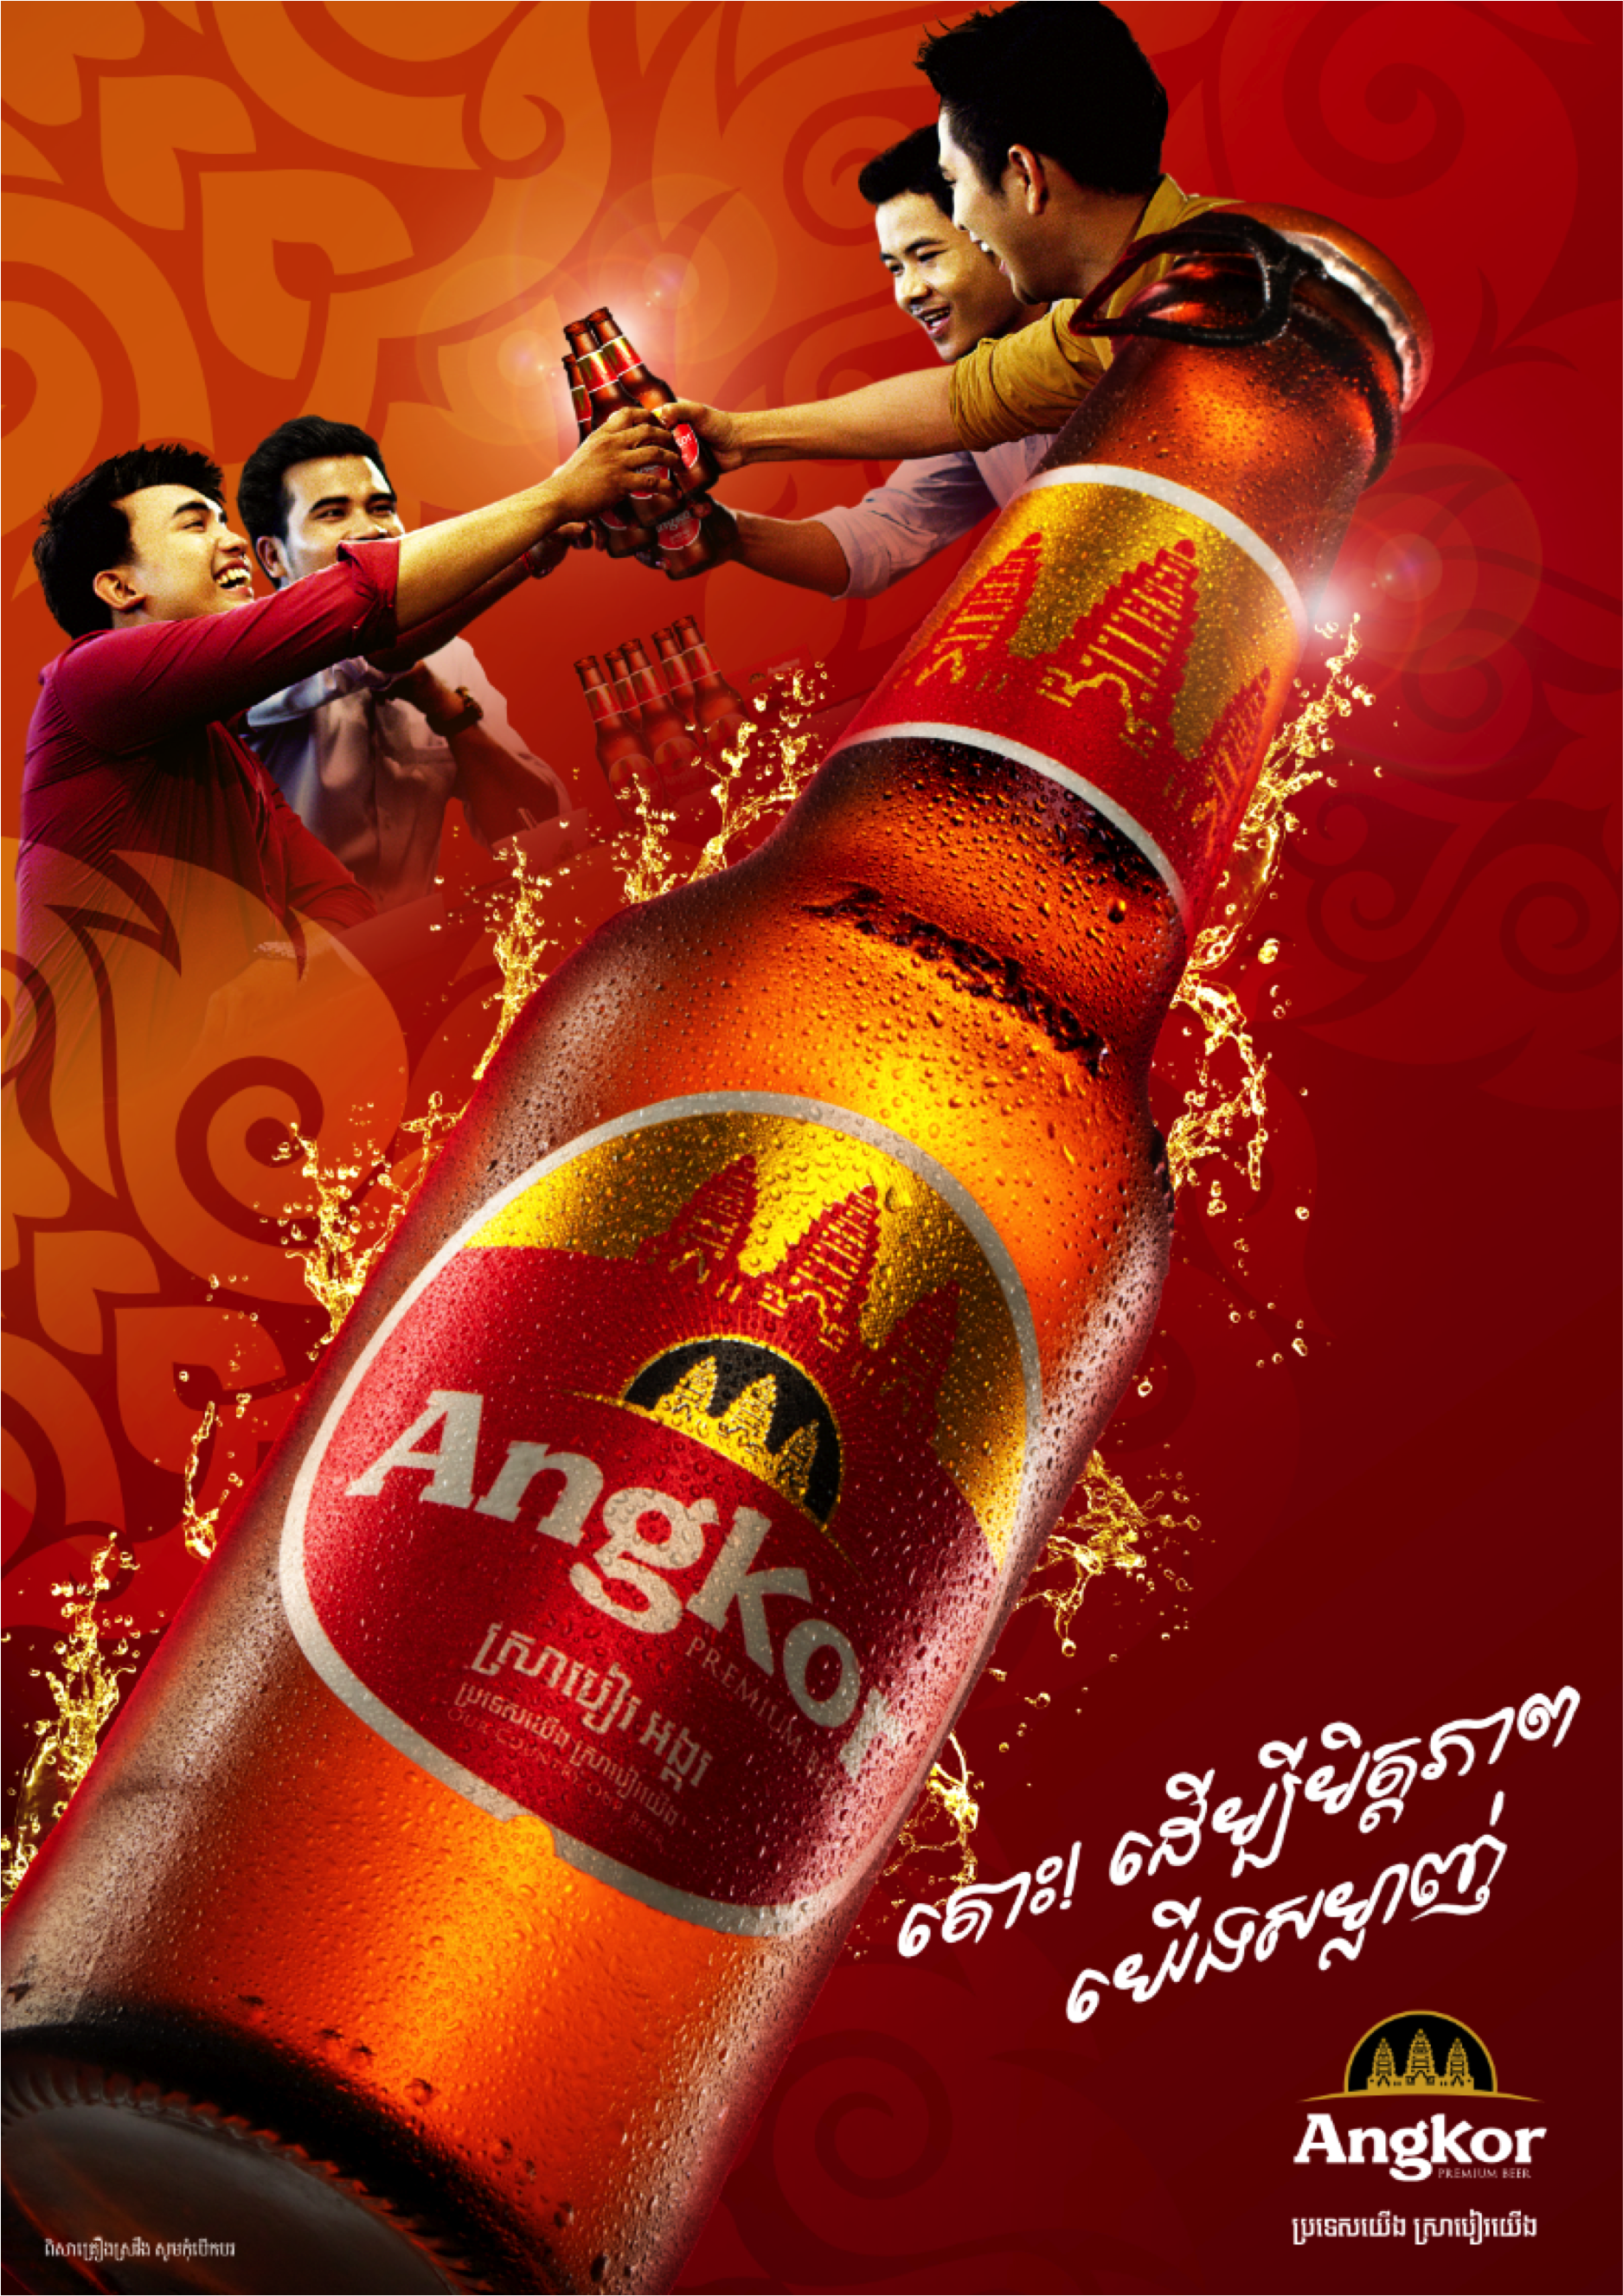 Angkor Beer Bottle Products